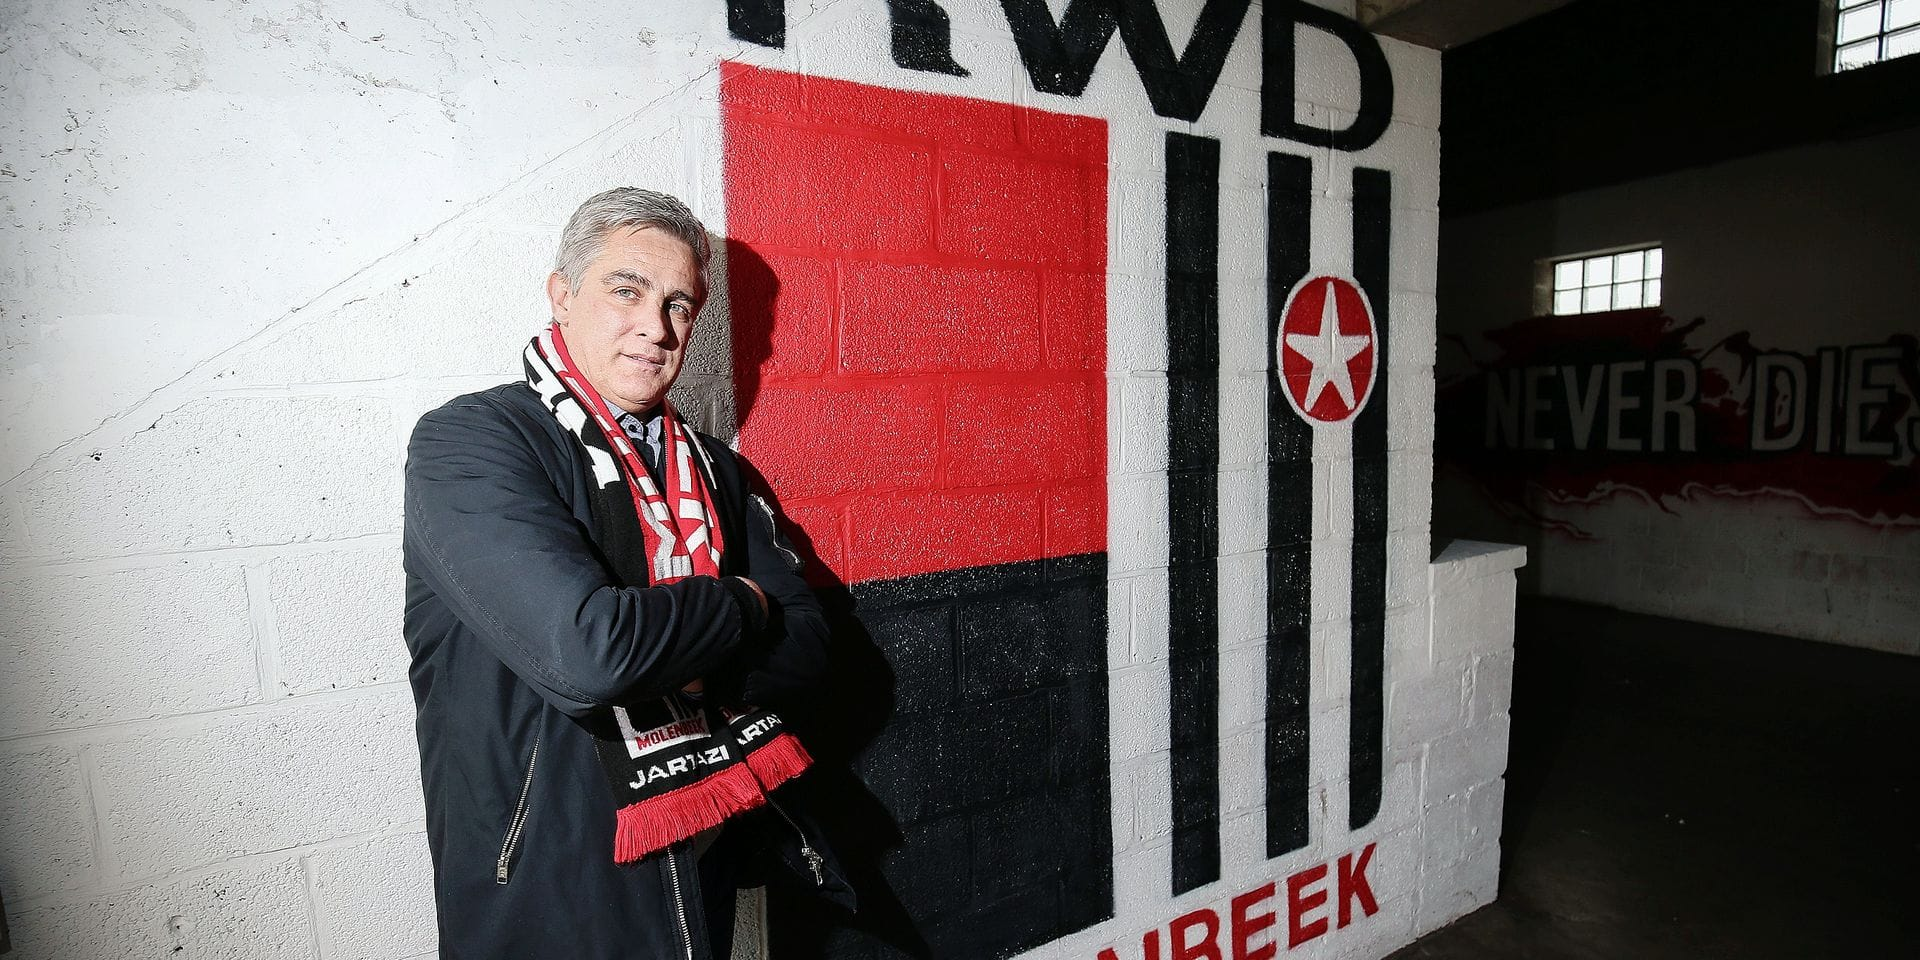 RWDM General Manager Thierry Dailly pictured during a photoshoot in Brussels, Thursday 10 March 2016. BELGA PHOTO BRUNO FAHY